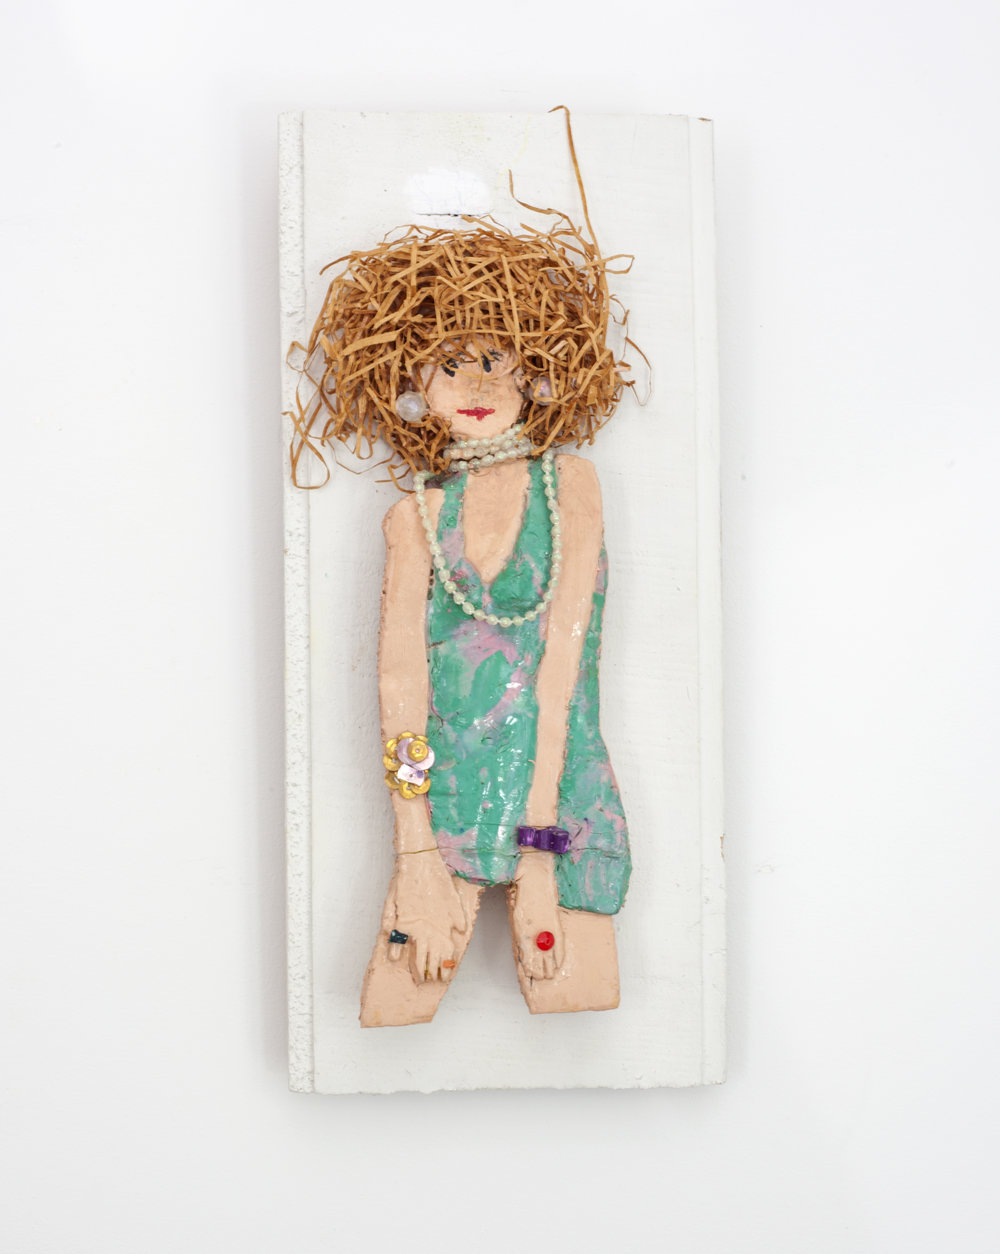 - Woman with Pearl Necklacec. 2012Mixed media on wood panel11 ¾ x 5 ¾ x 2 inches